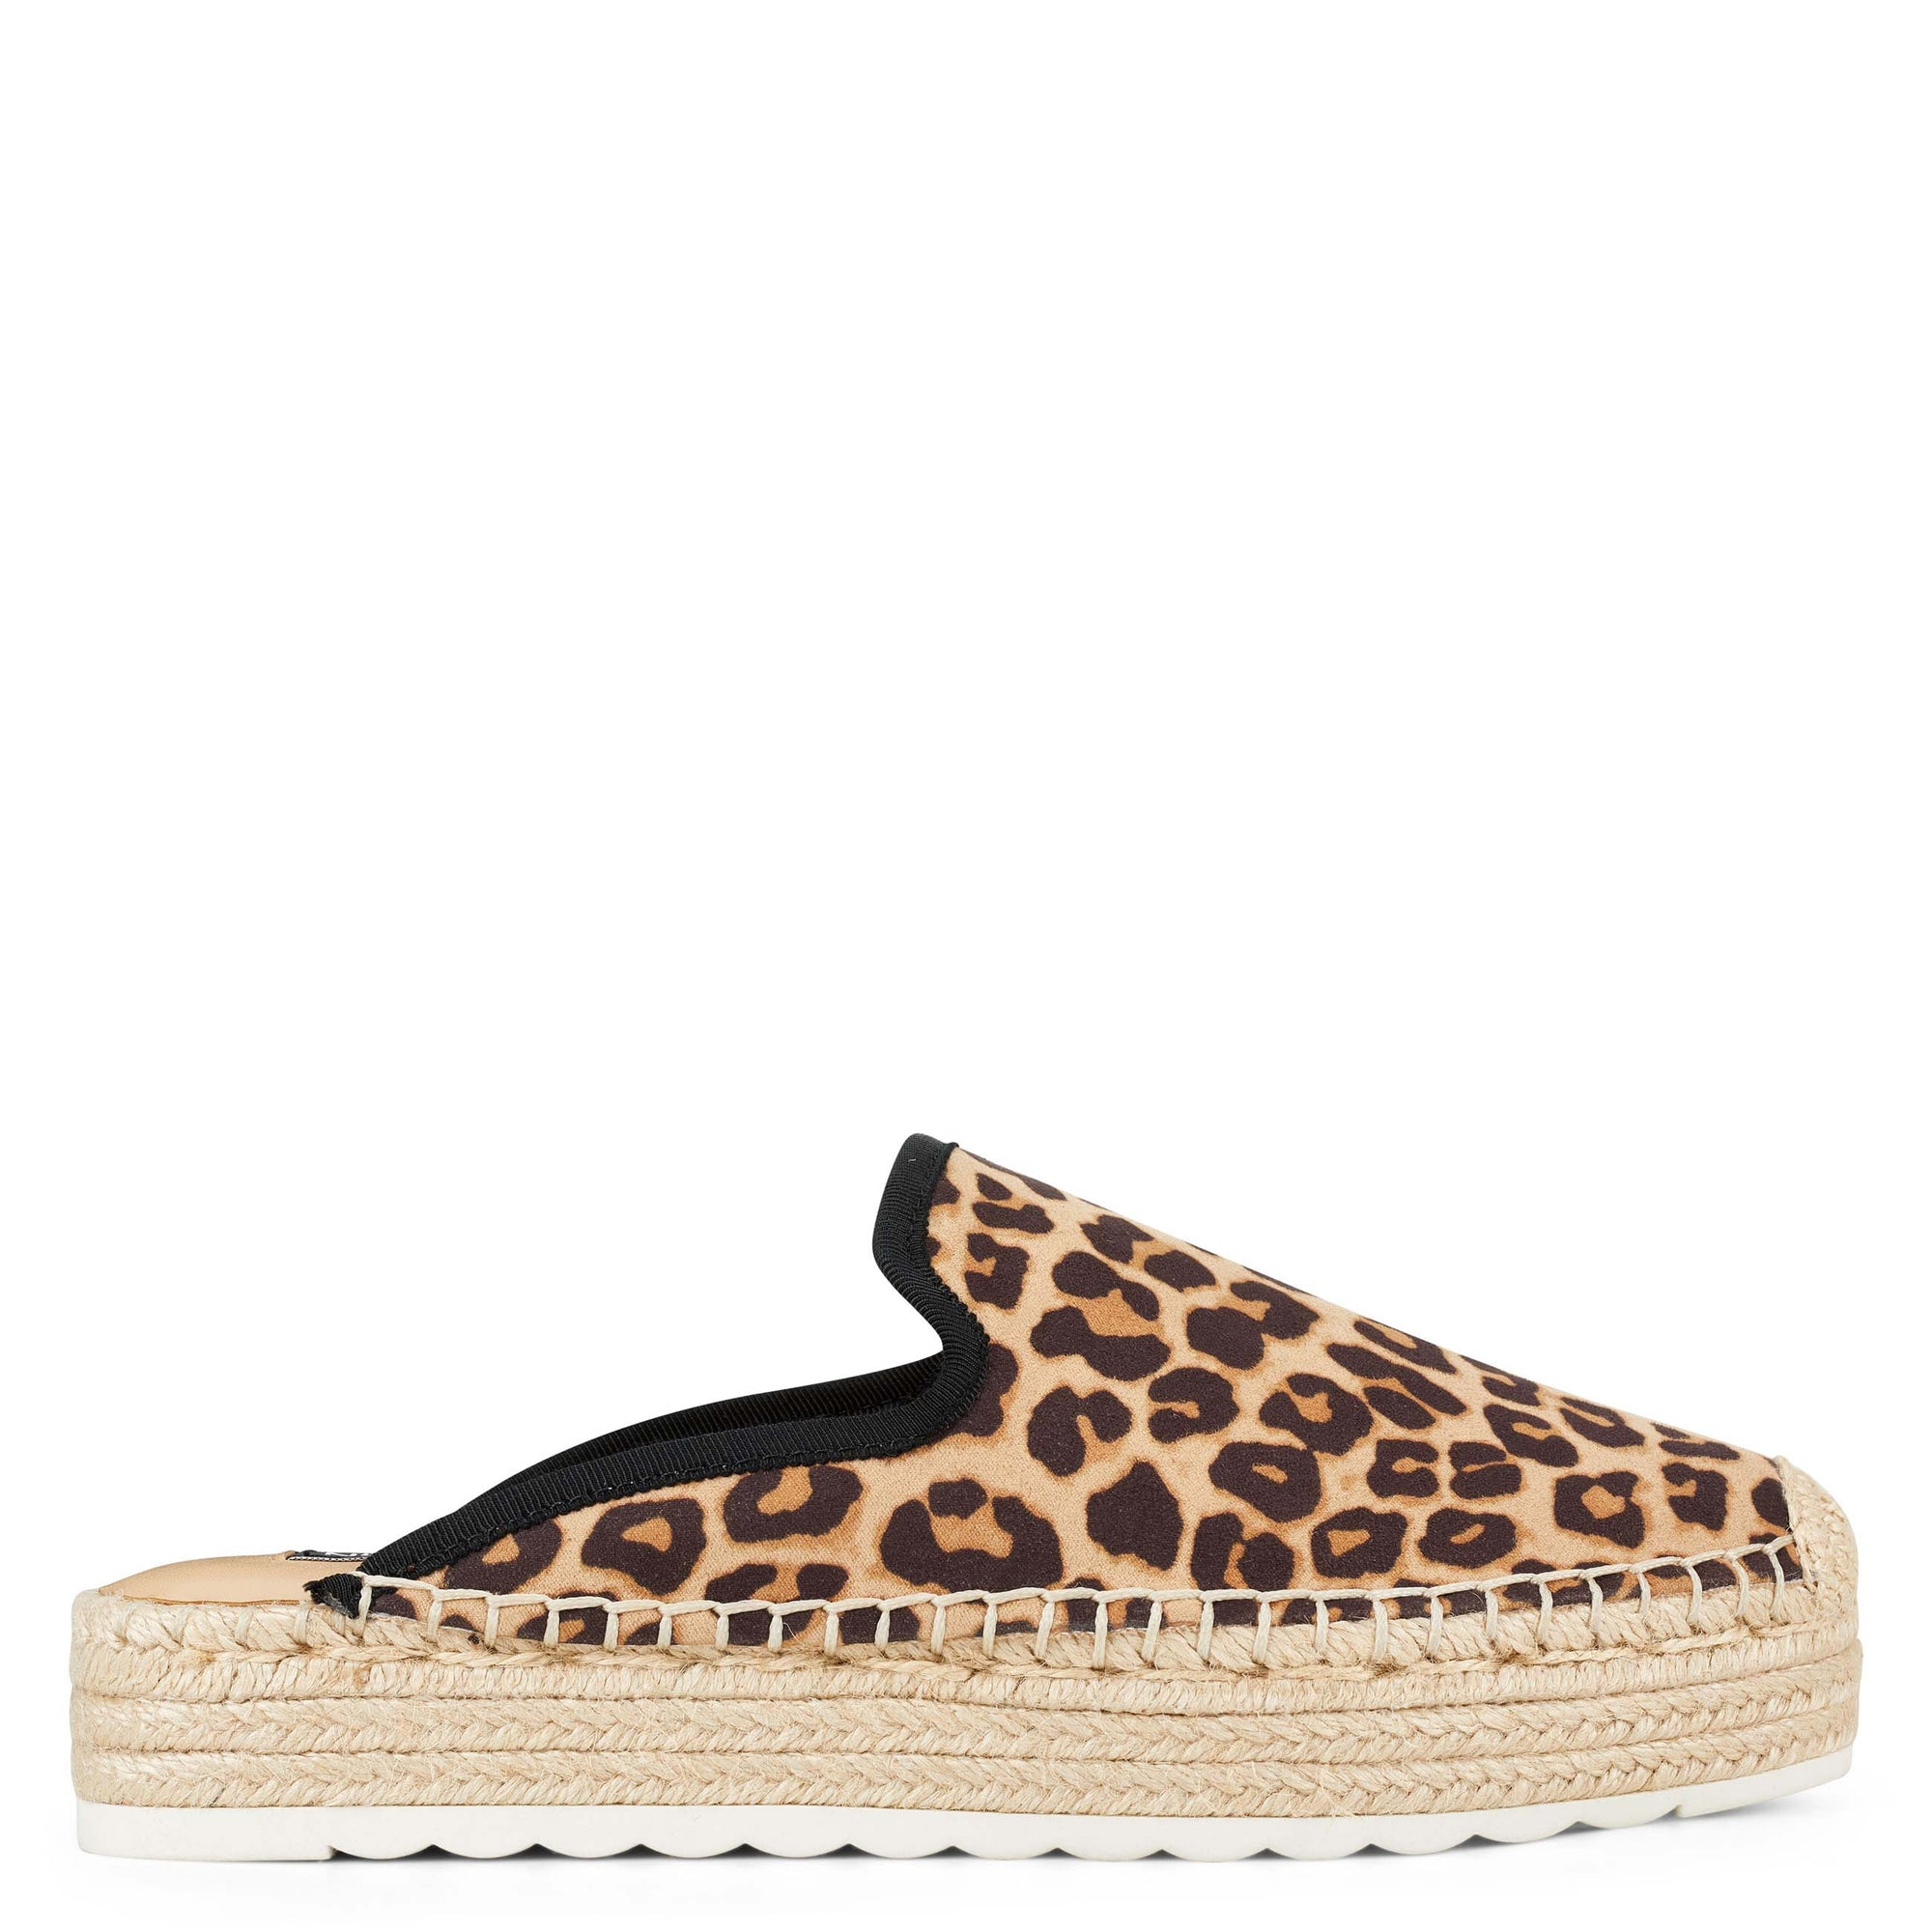 sweetie-slip-on-espadrille-mules-in-leopard-print-fabric